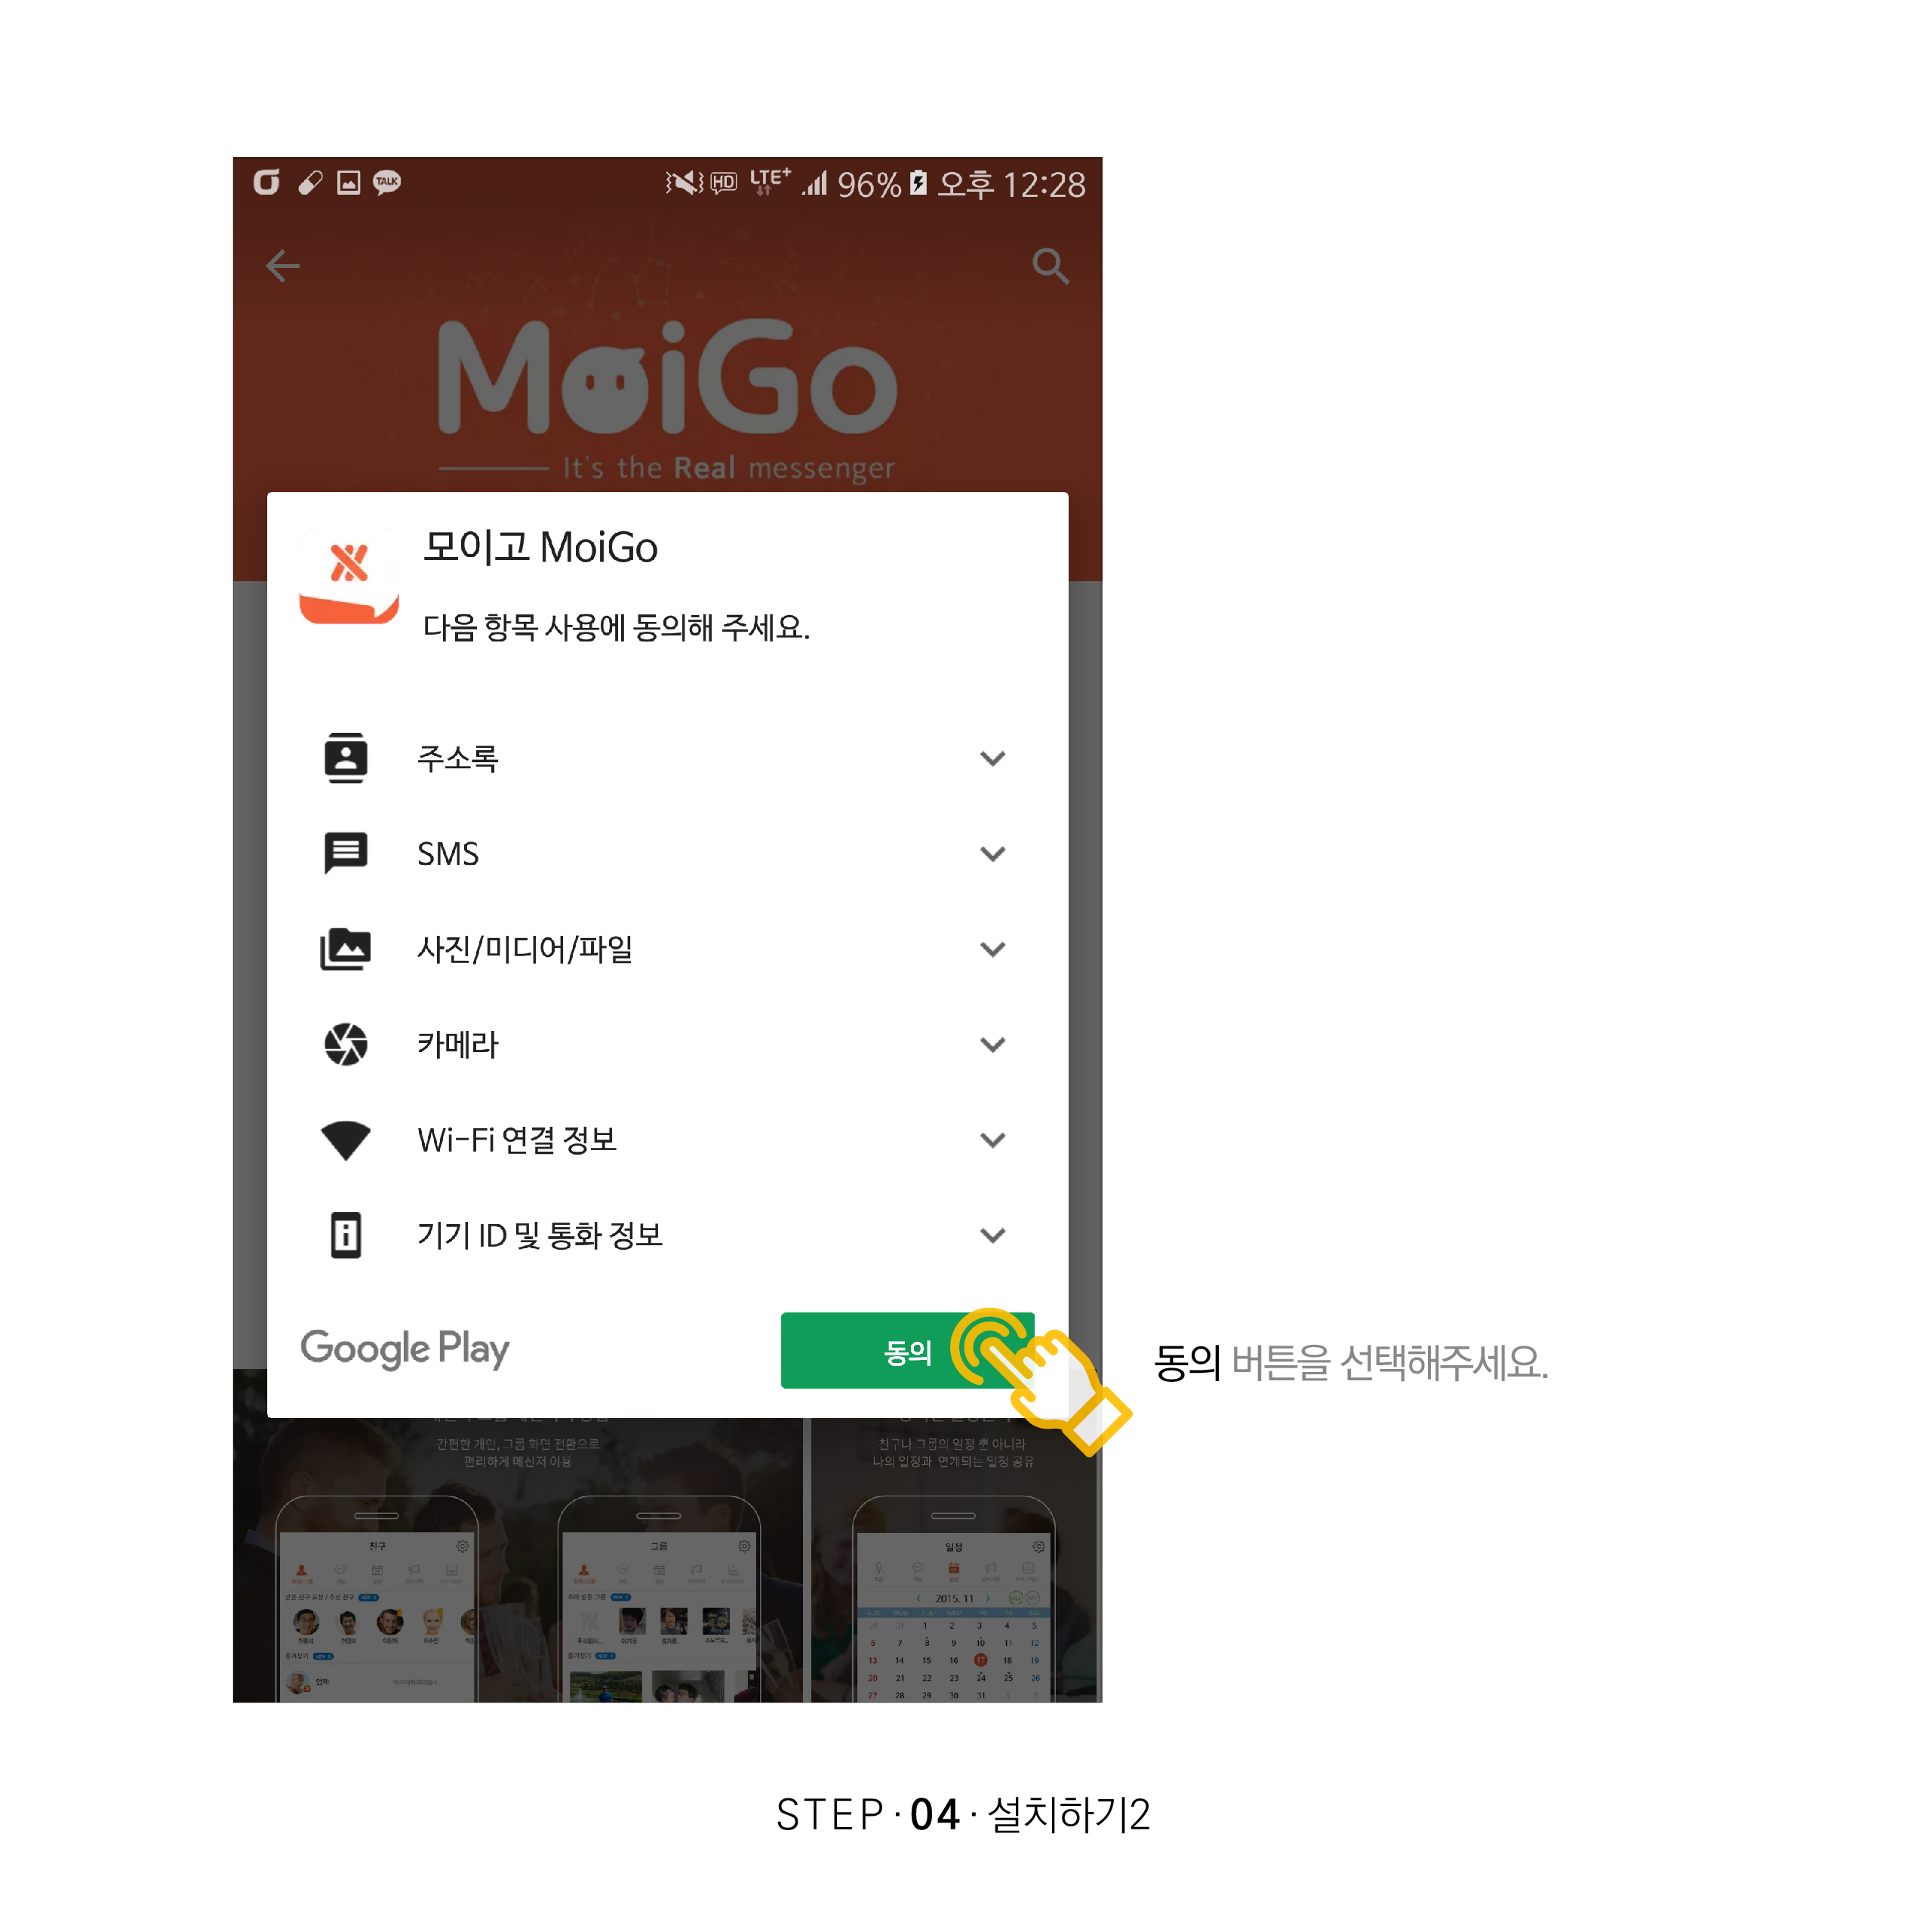 howtodownload-04